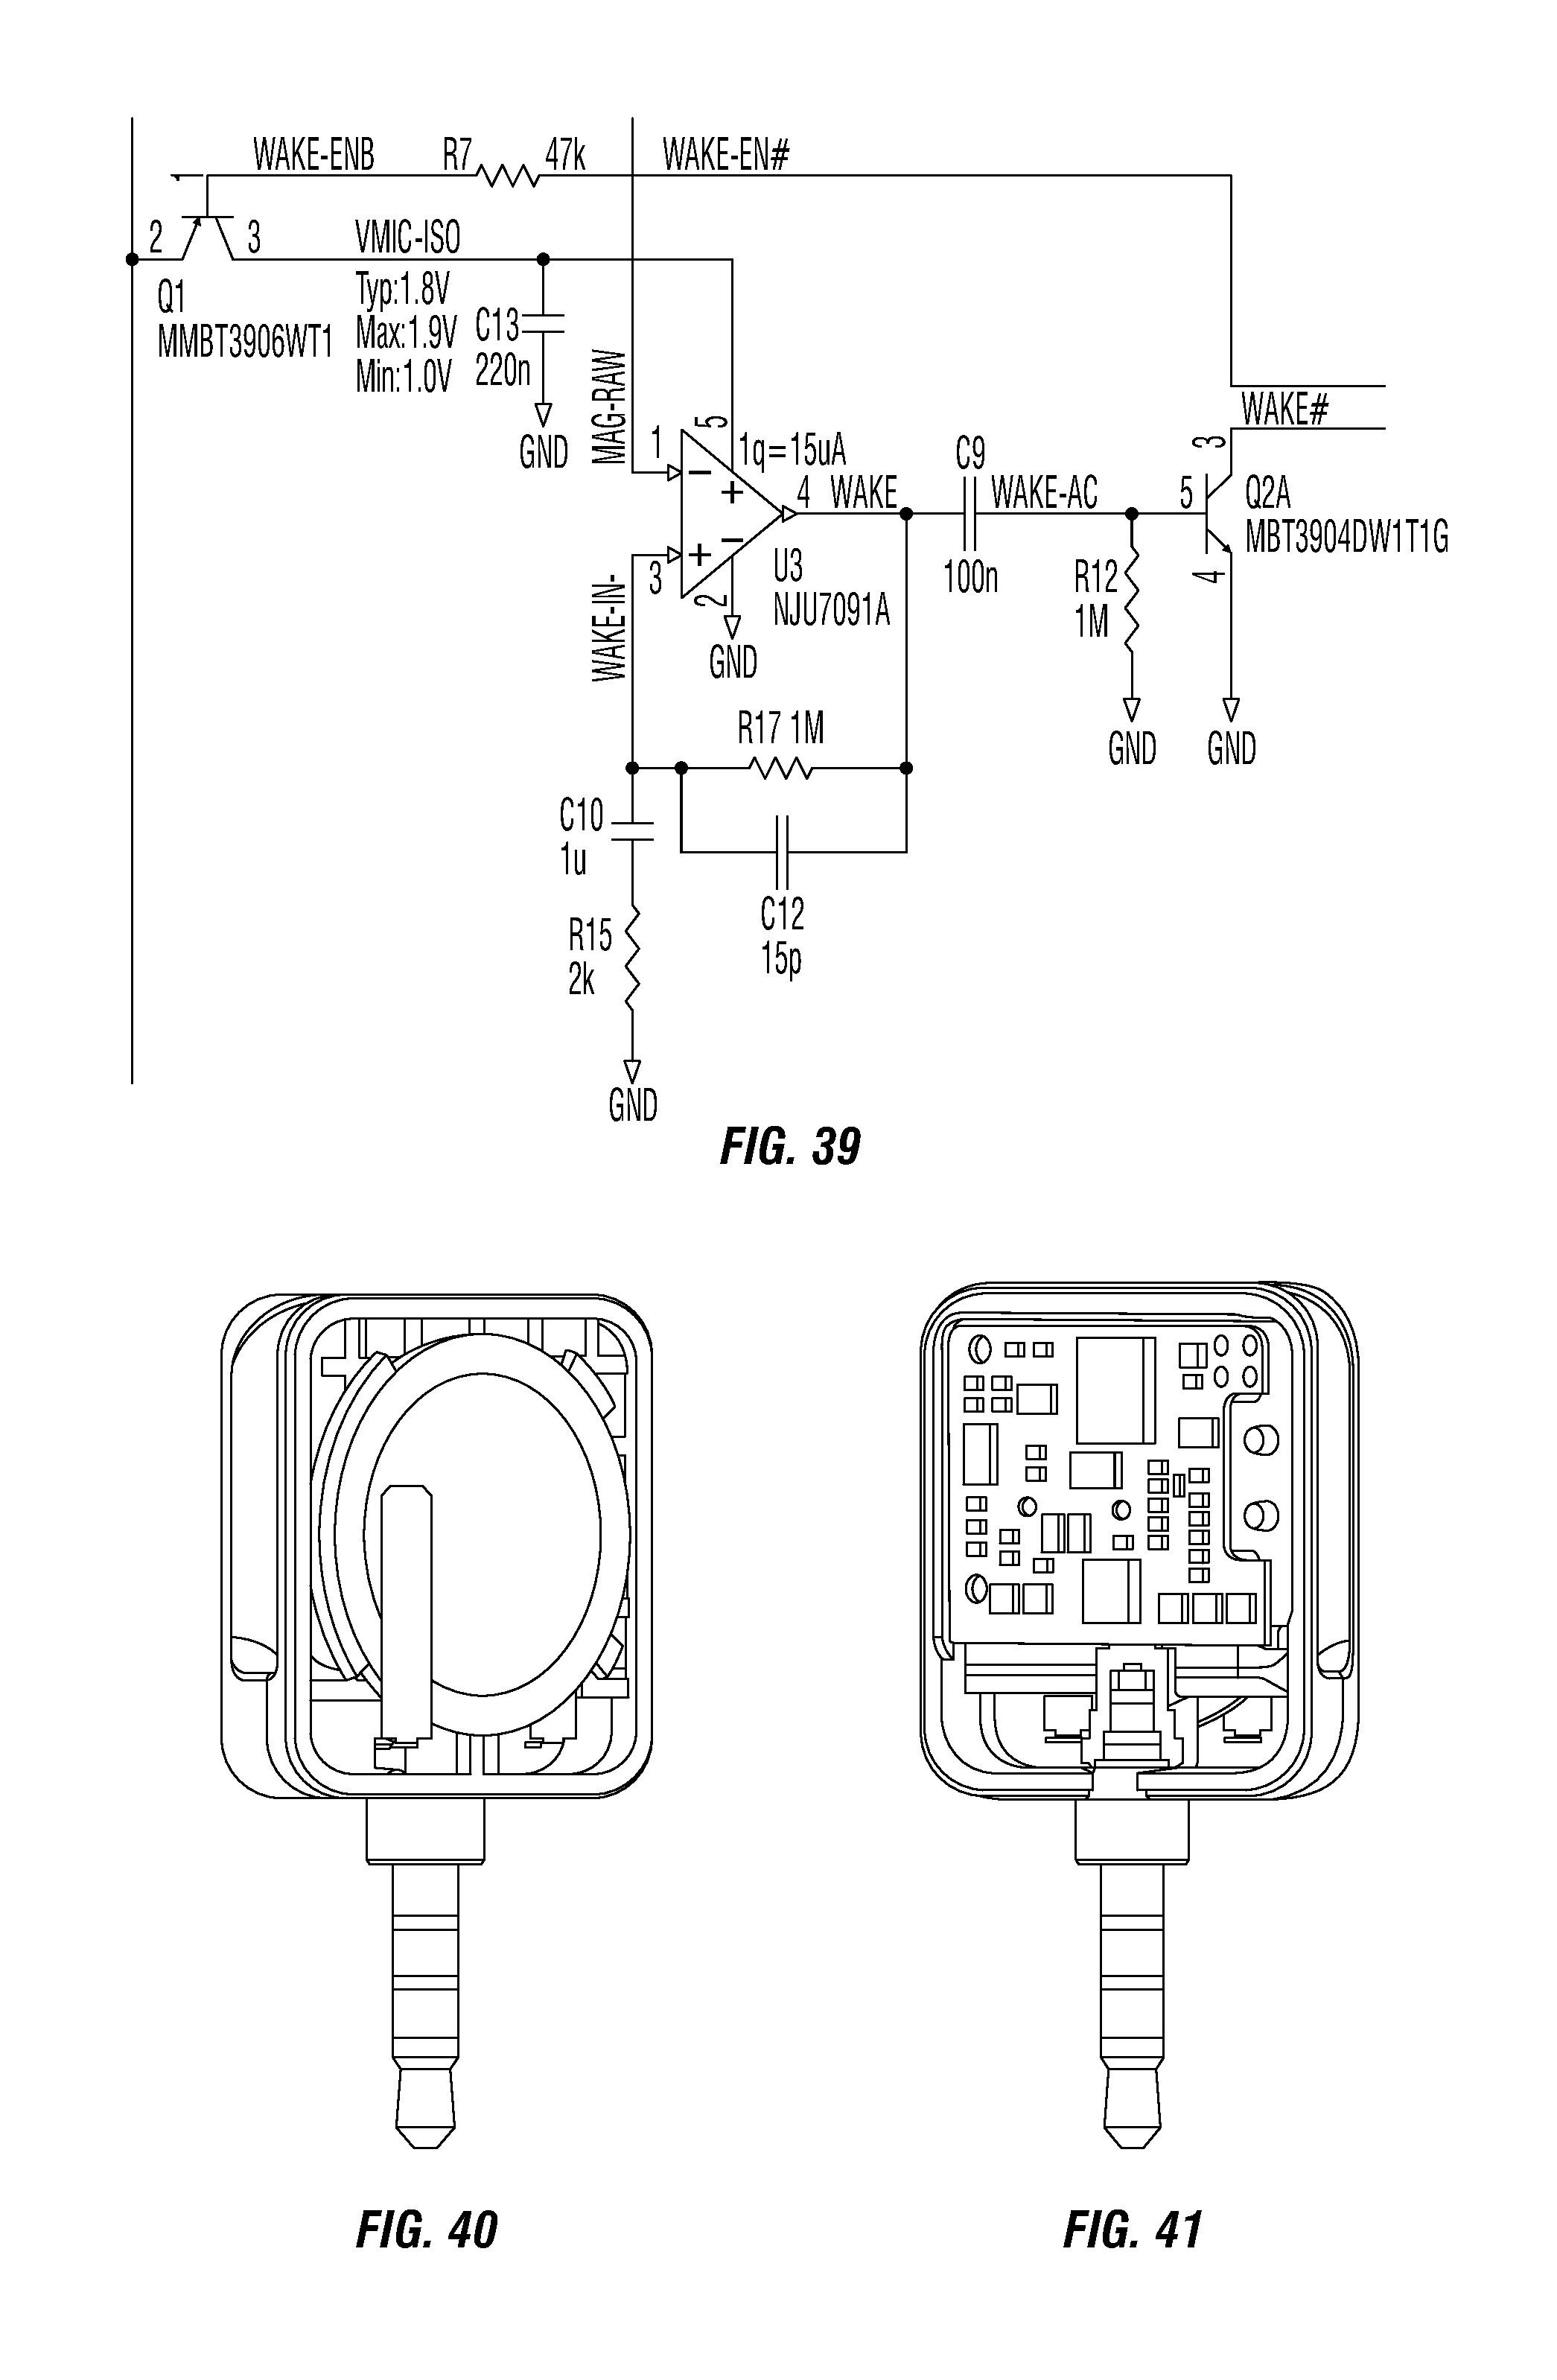 Patent Us 9262777 B2 Microsoft Surface Charger Wiring Diagram 0 Petitions